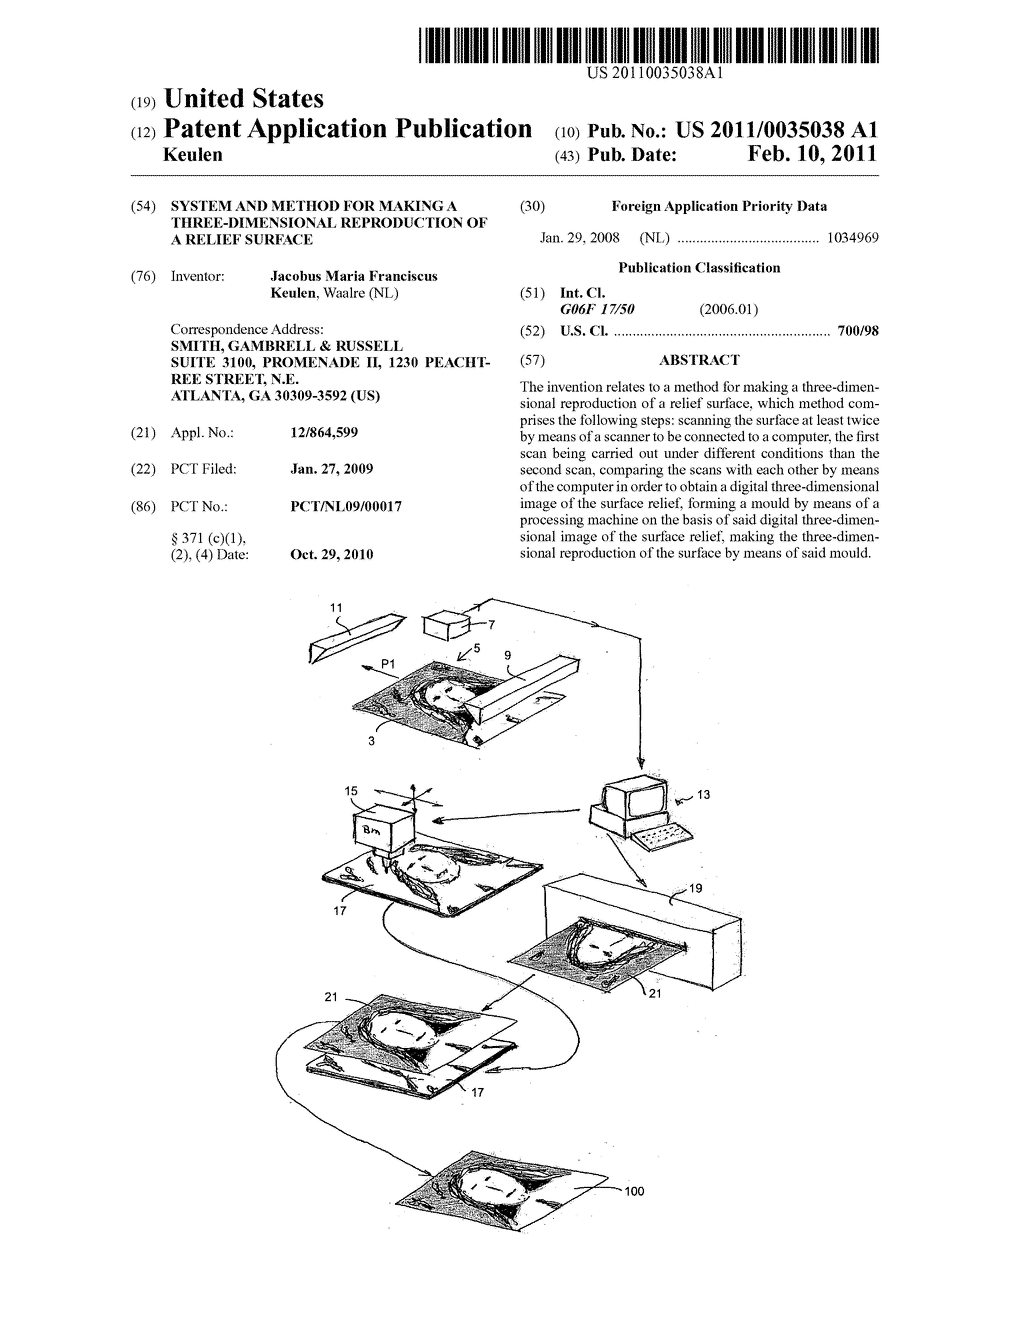 System and Method for Making a Three-Dimensional Reproduction of a Relief Surface - diagram, schematic, and image 01